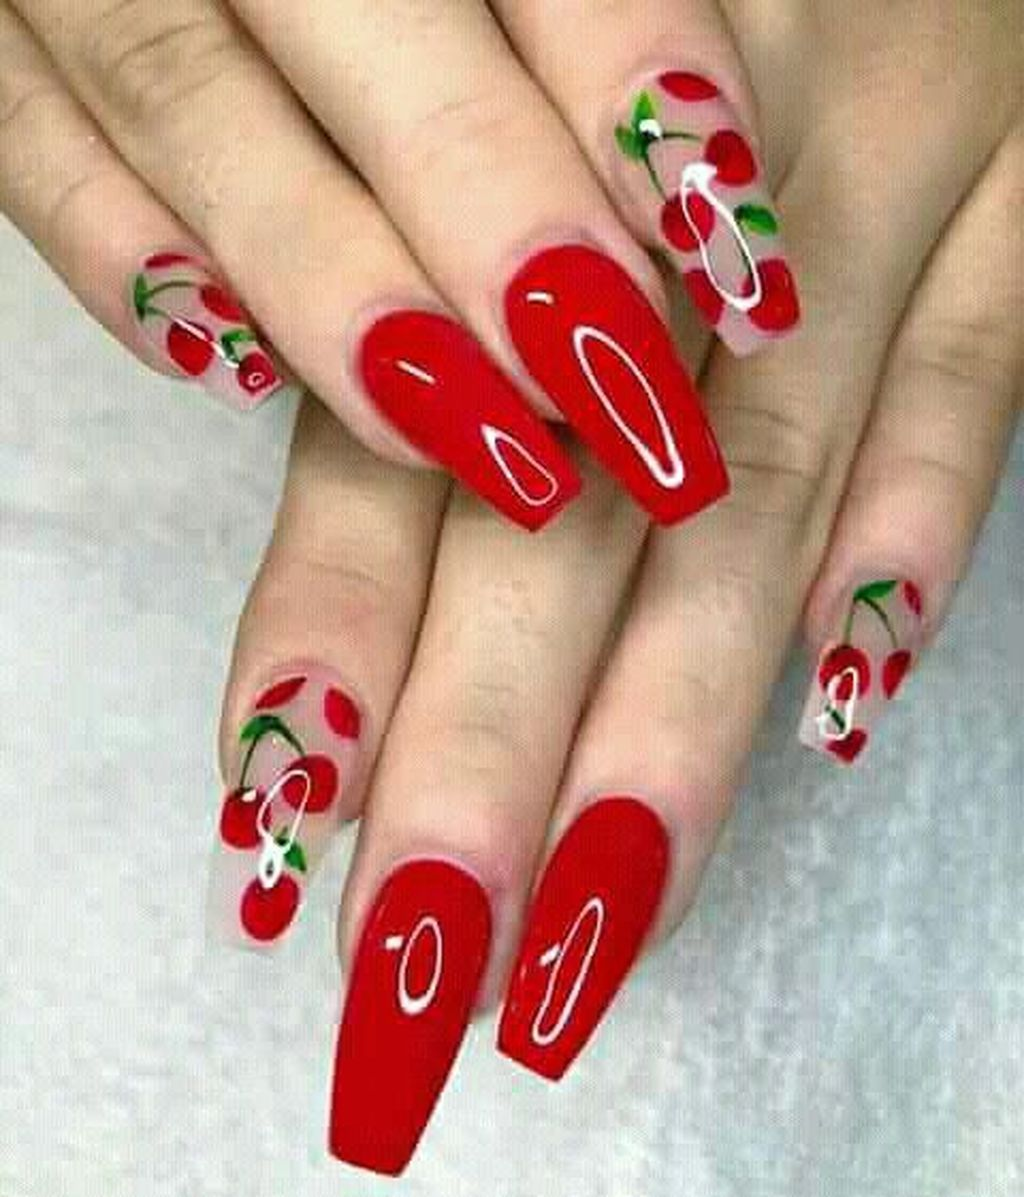 30 Trending Red Nails Art Ideas For This Year In 2020 Short Acrylic Nails Designs Cute Nail Art Designs Cherry Nails